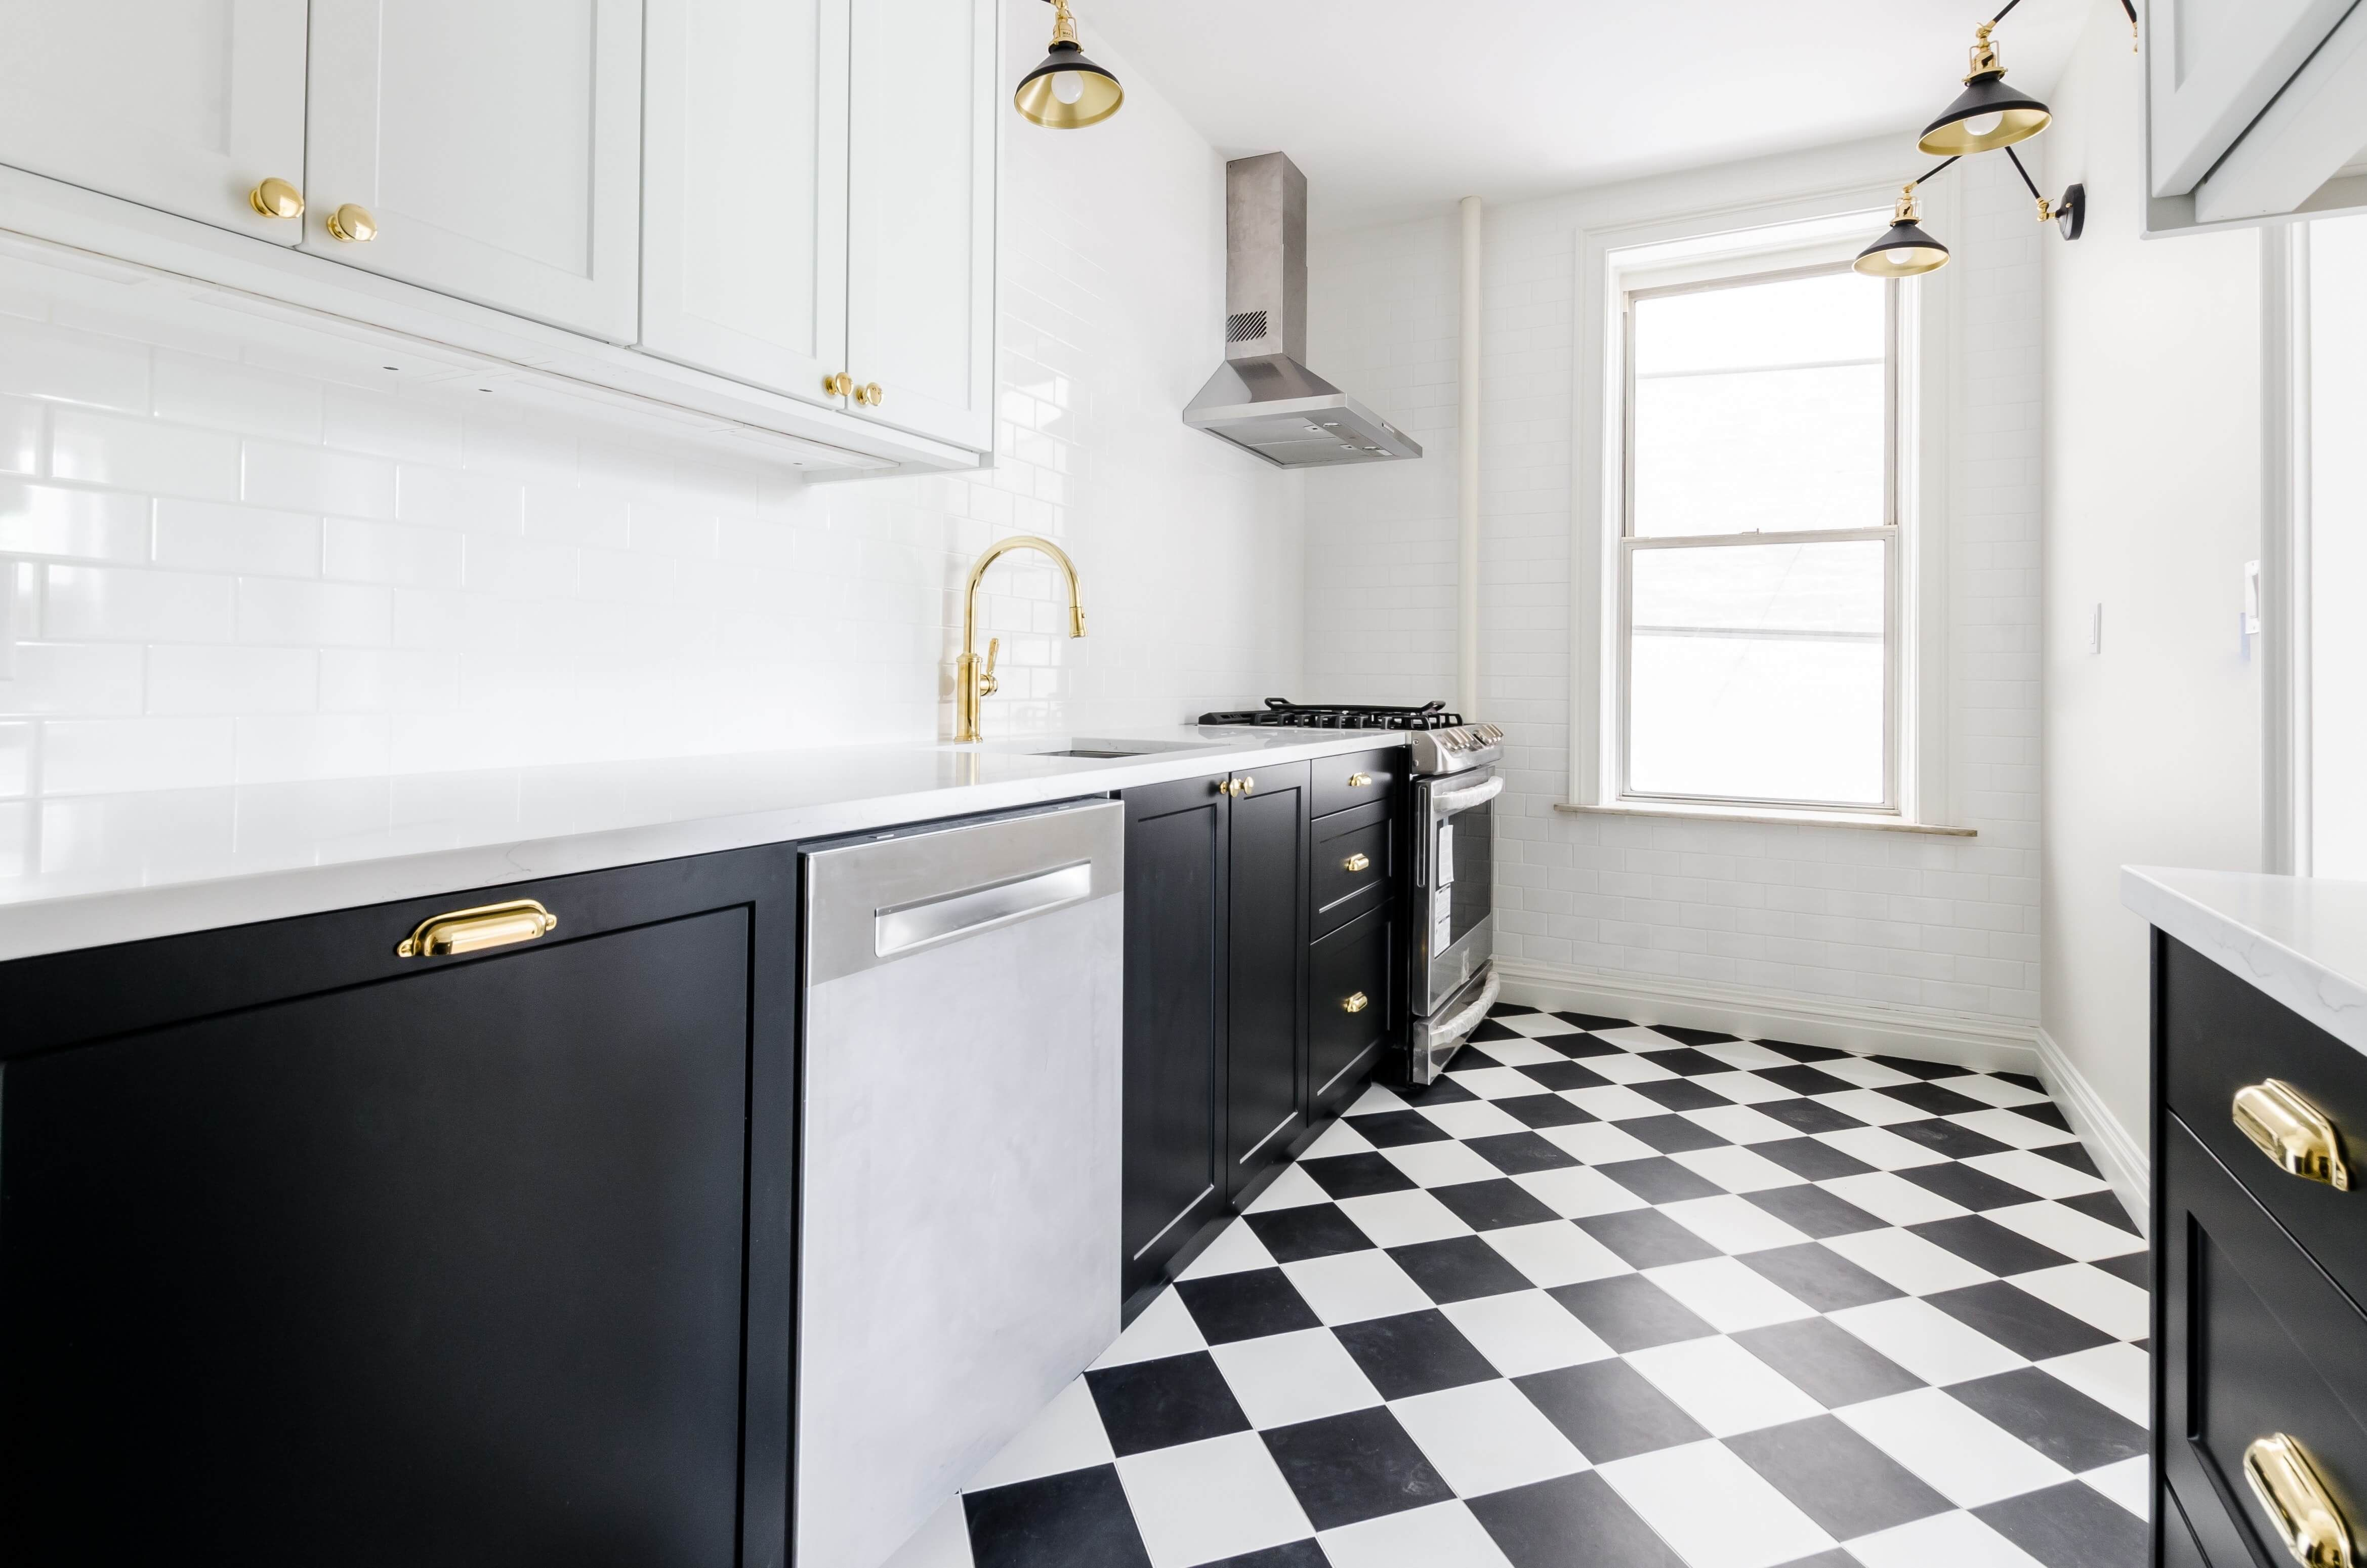 Cabinet Refinishing In Garden City Ny N Hance Of Central Nassau County In 2020 Refinishing Cabinets Dishwasher Kitchen Cookware Sets